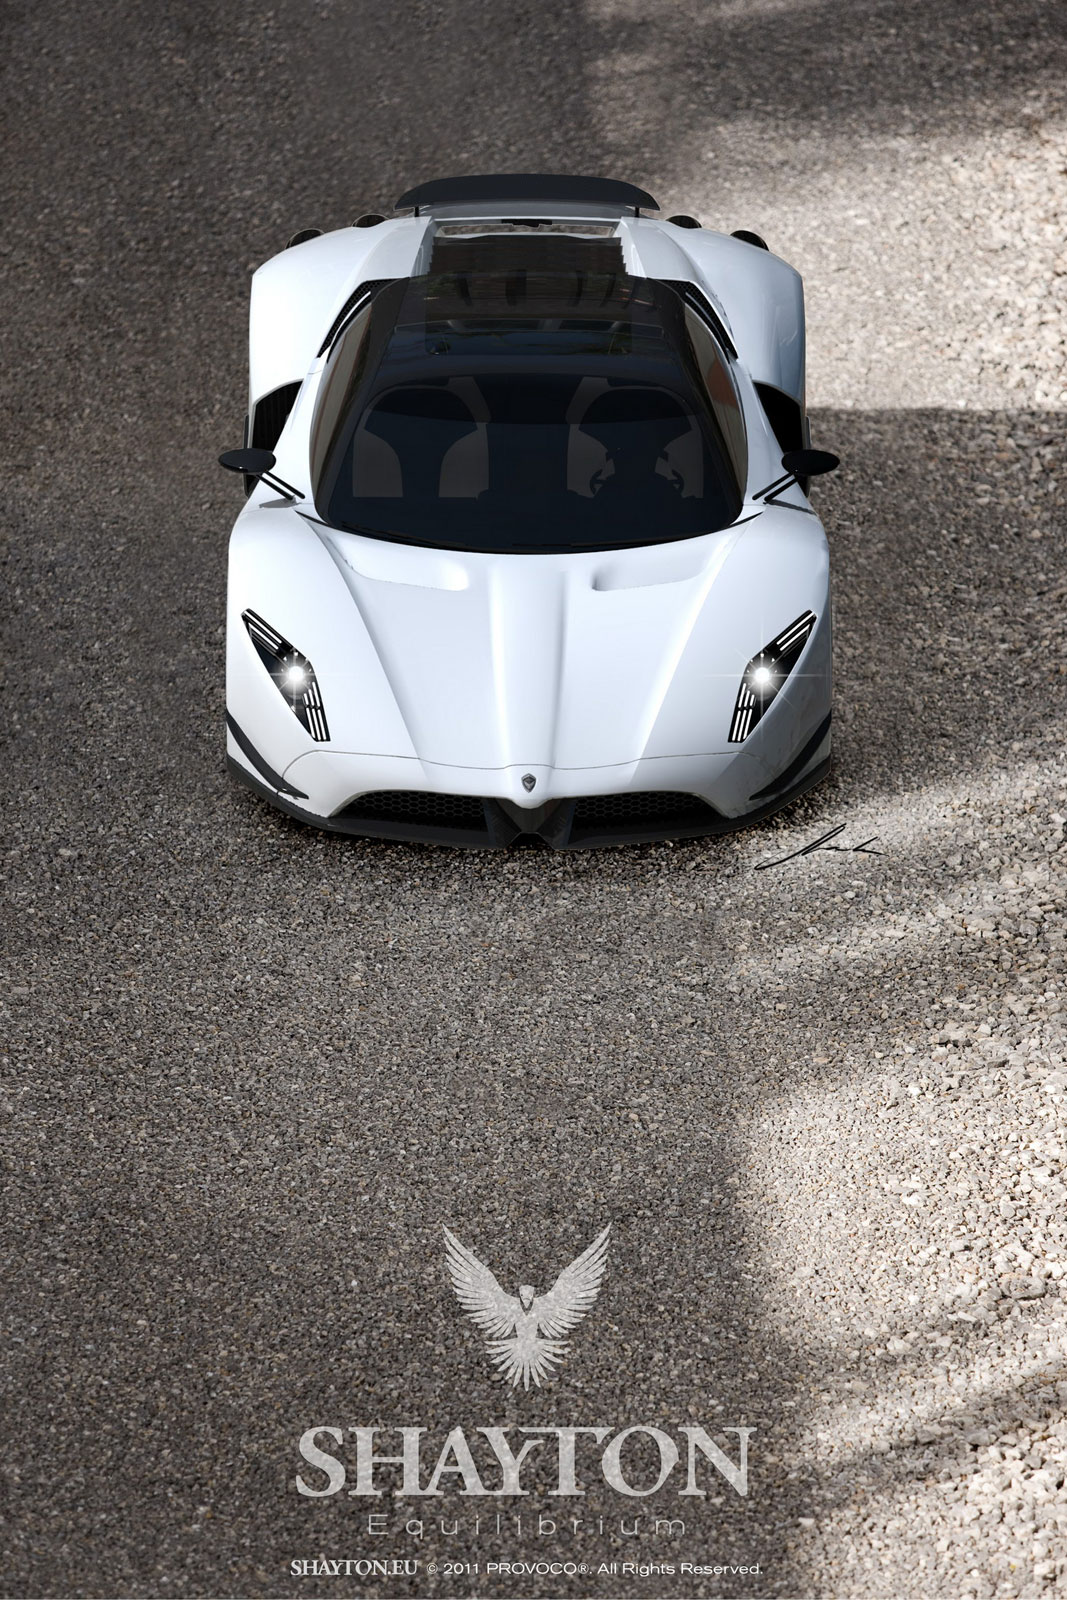 Shayton Equilibrium the new supercar from the Slovenian ...